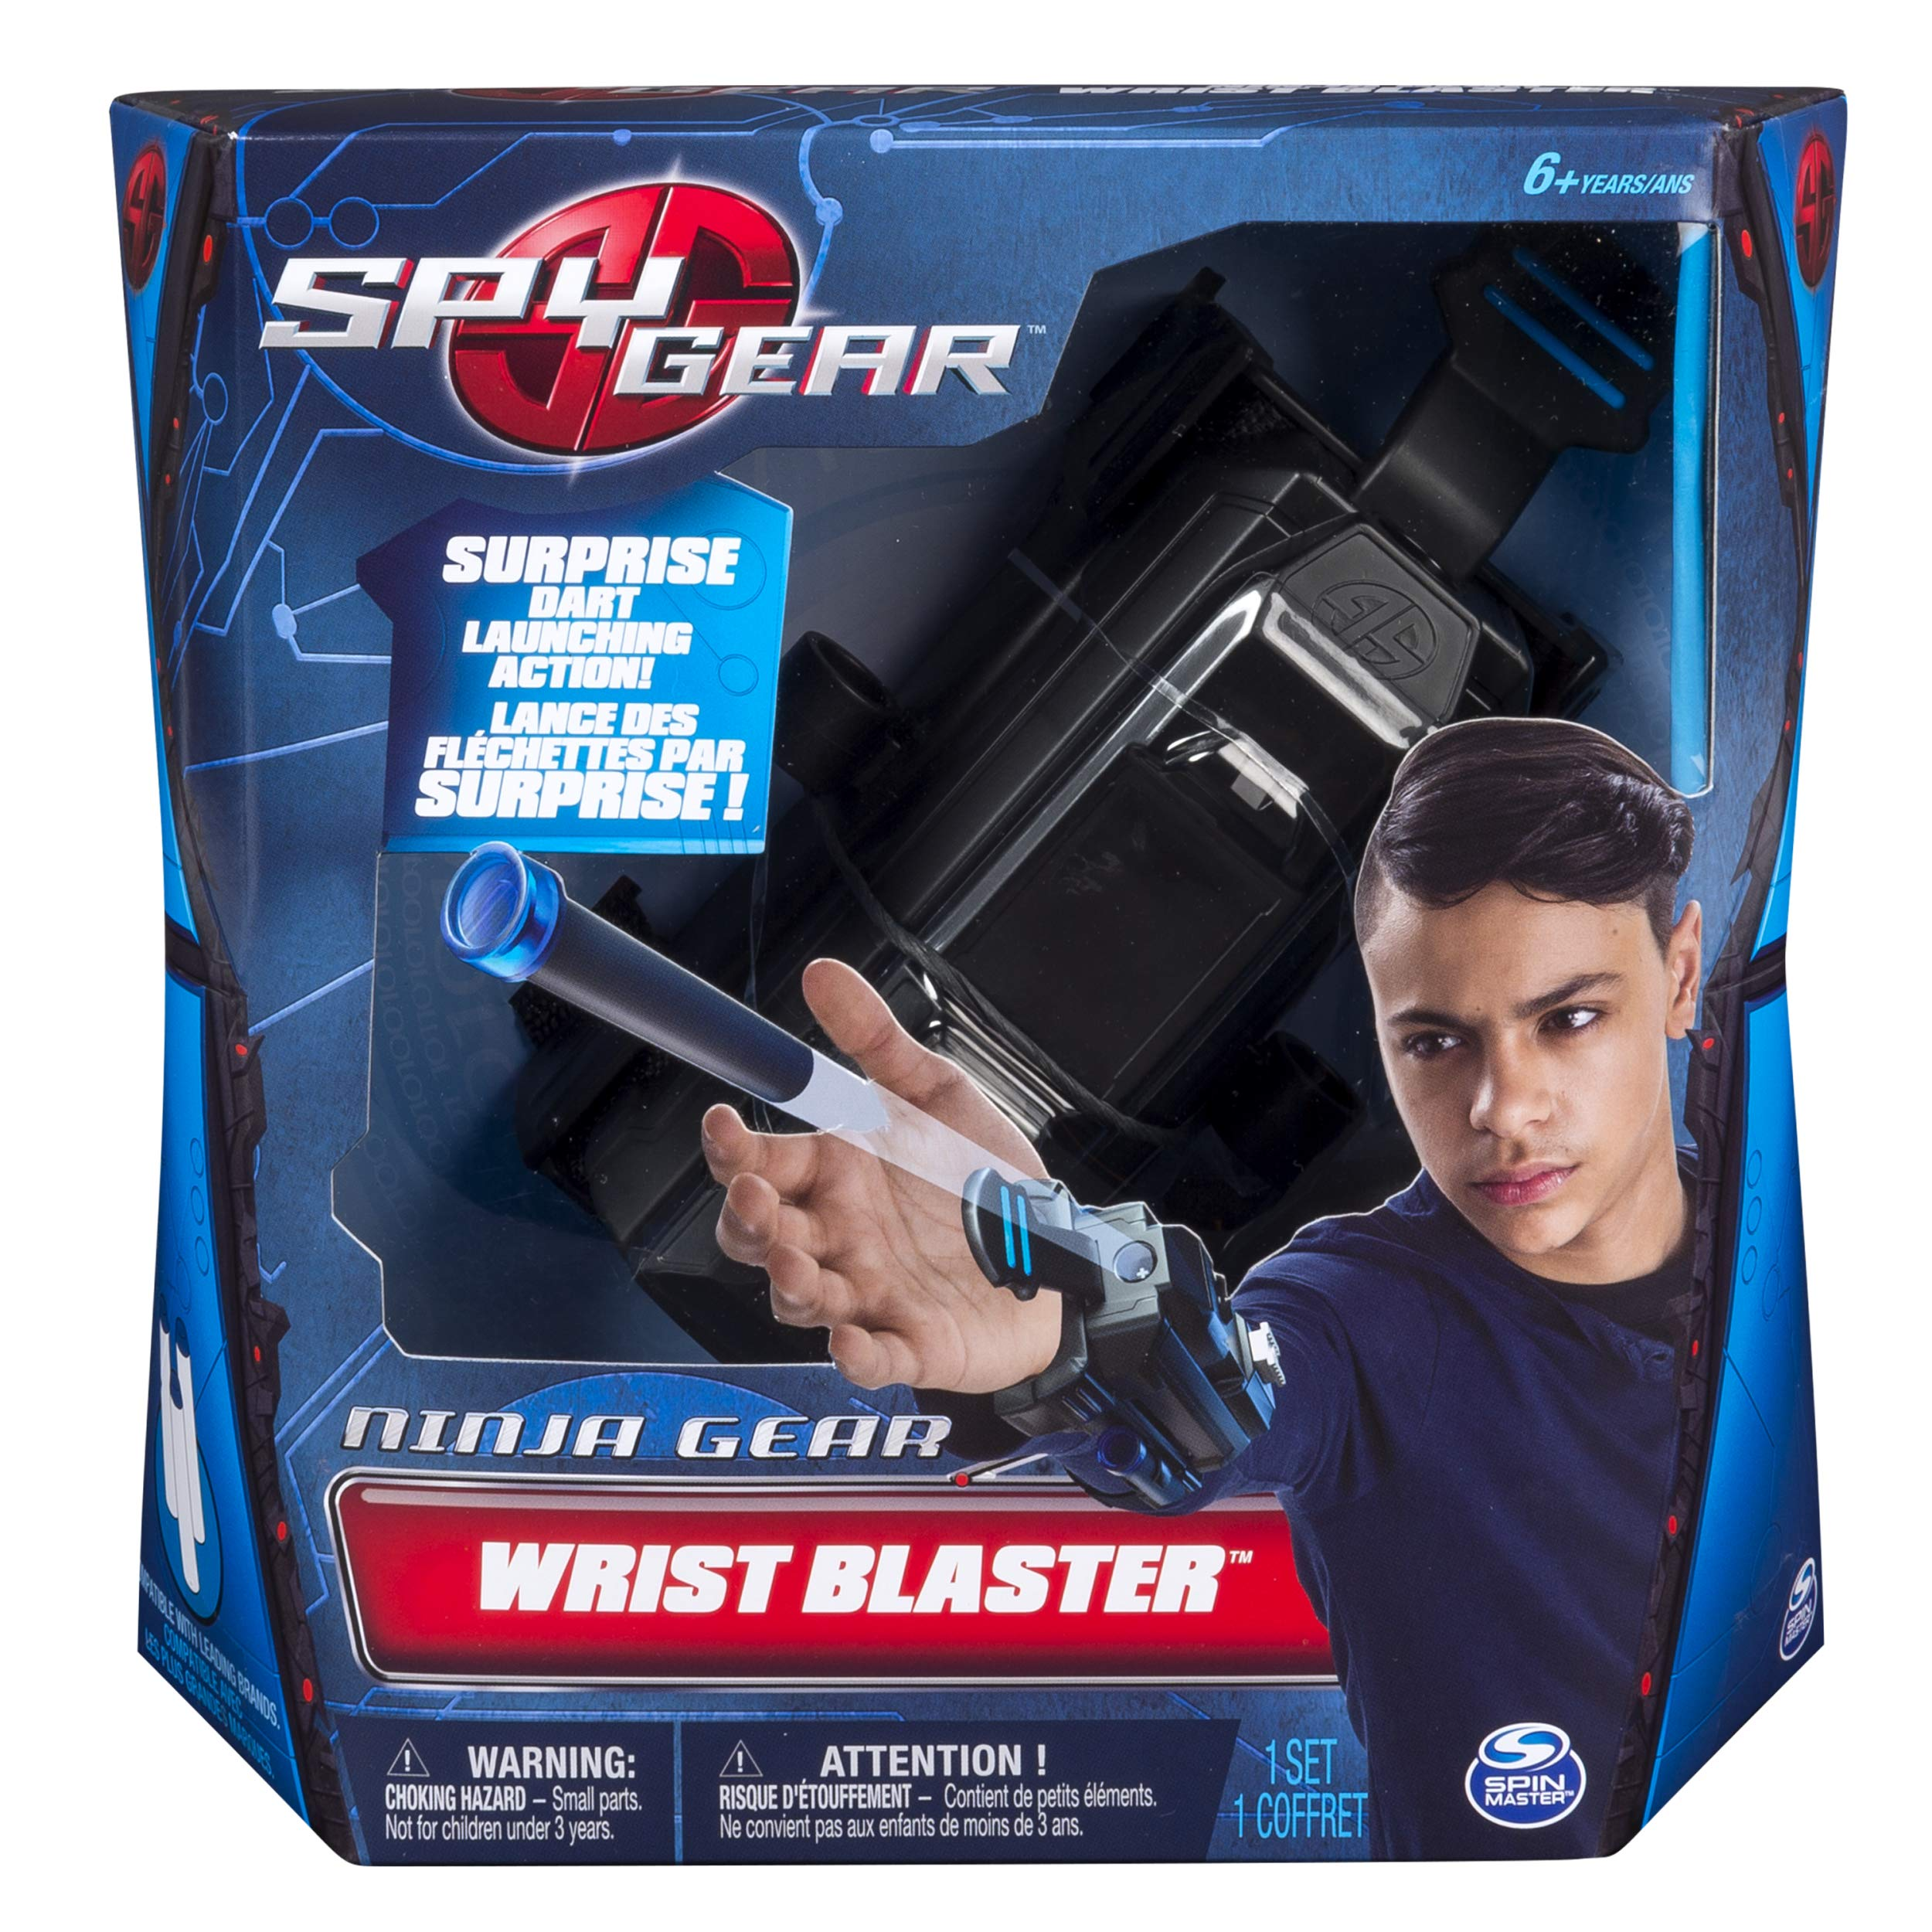 Spy Gear - Ninja Gear - Wrist Blaster by Spy Gear